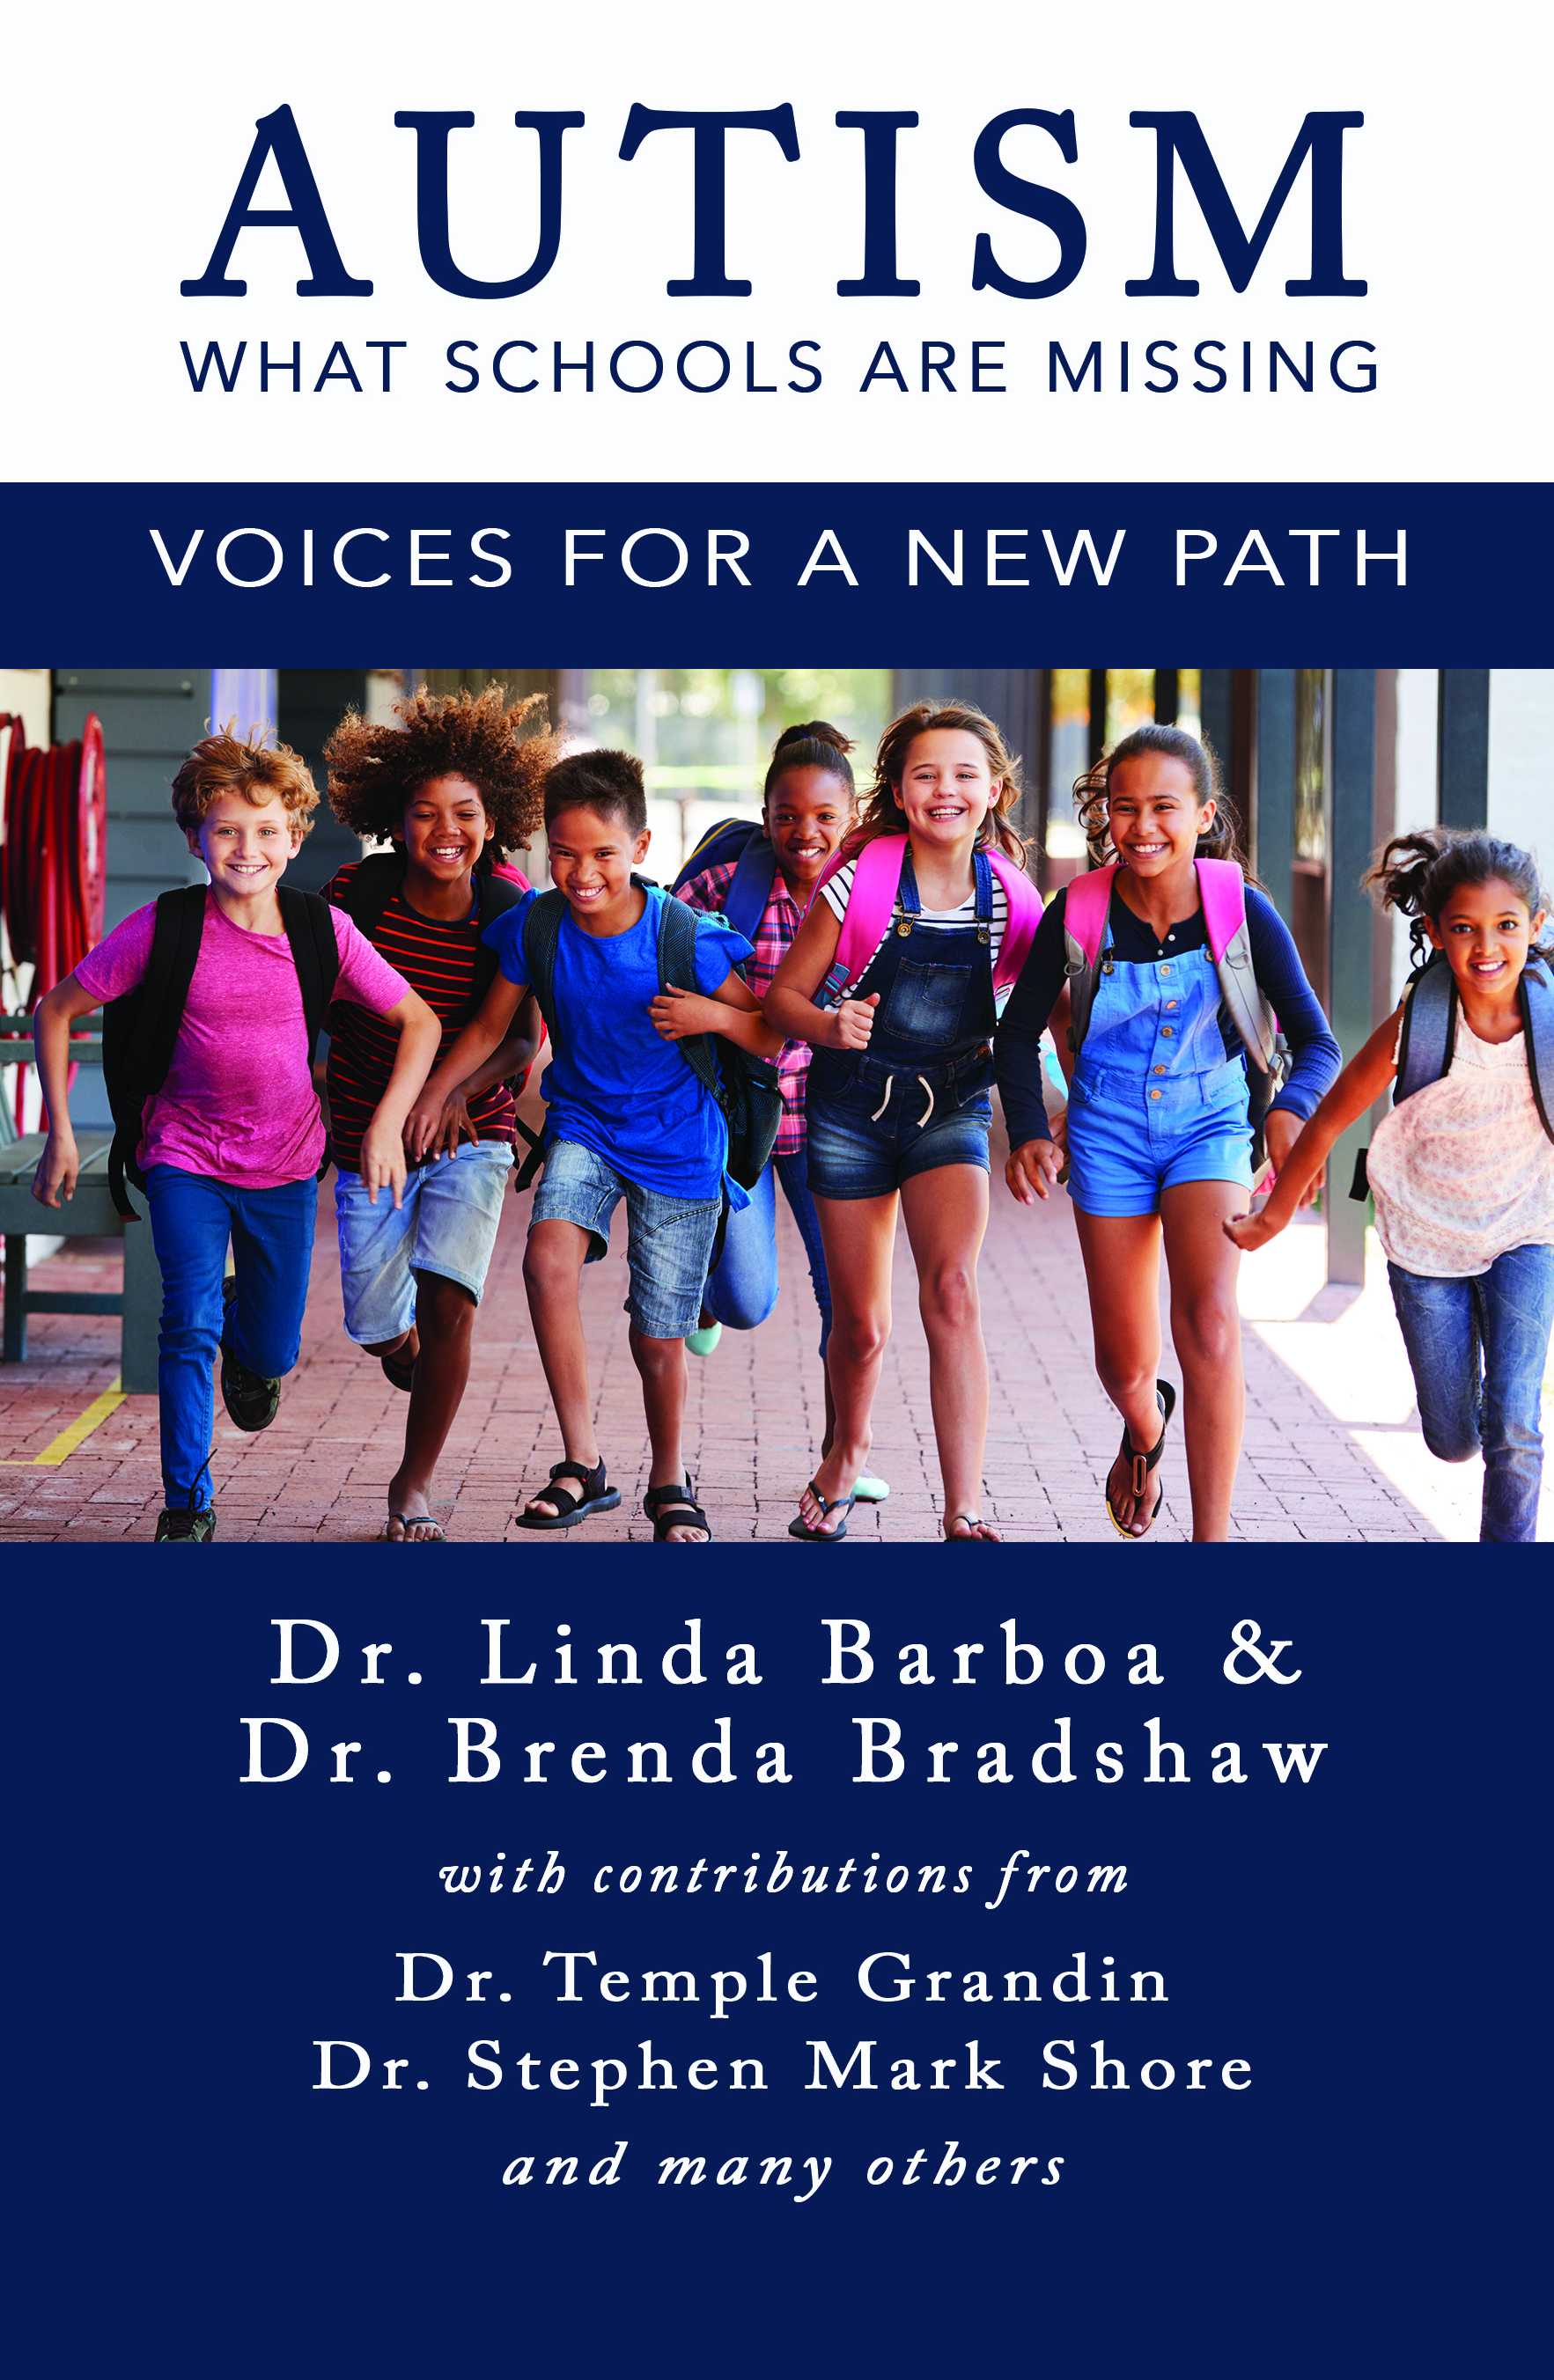 Autism - What Schools Are Missing: Voices for a New Path